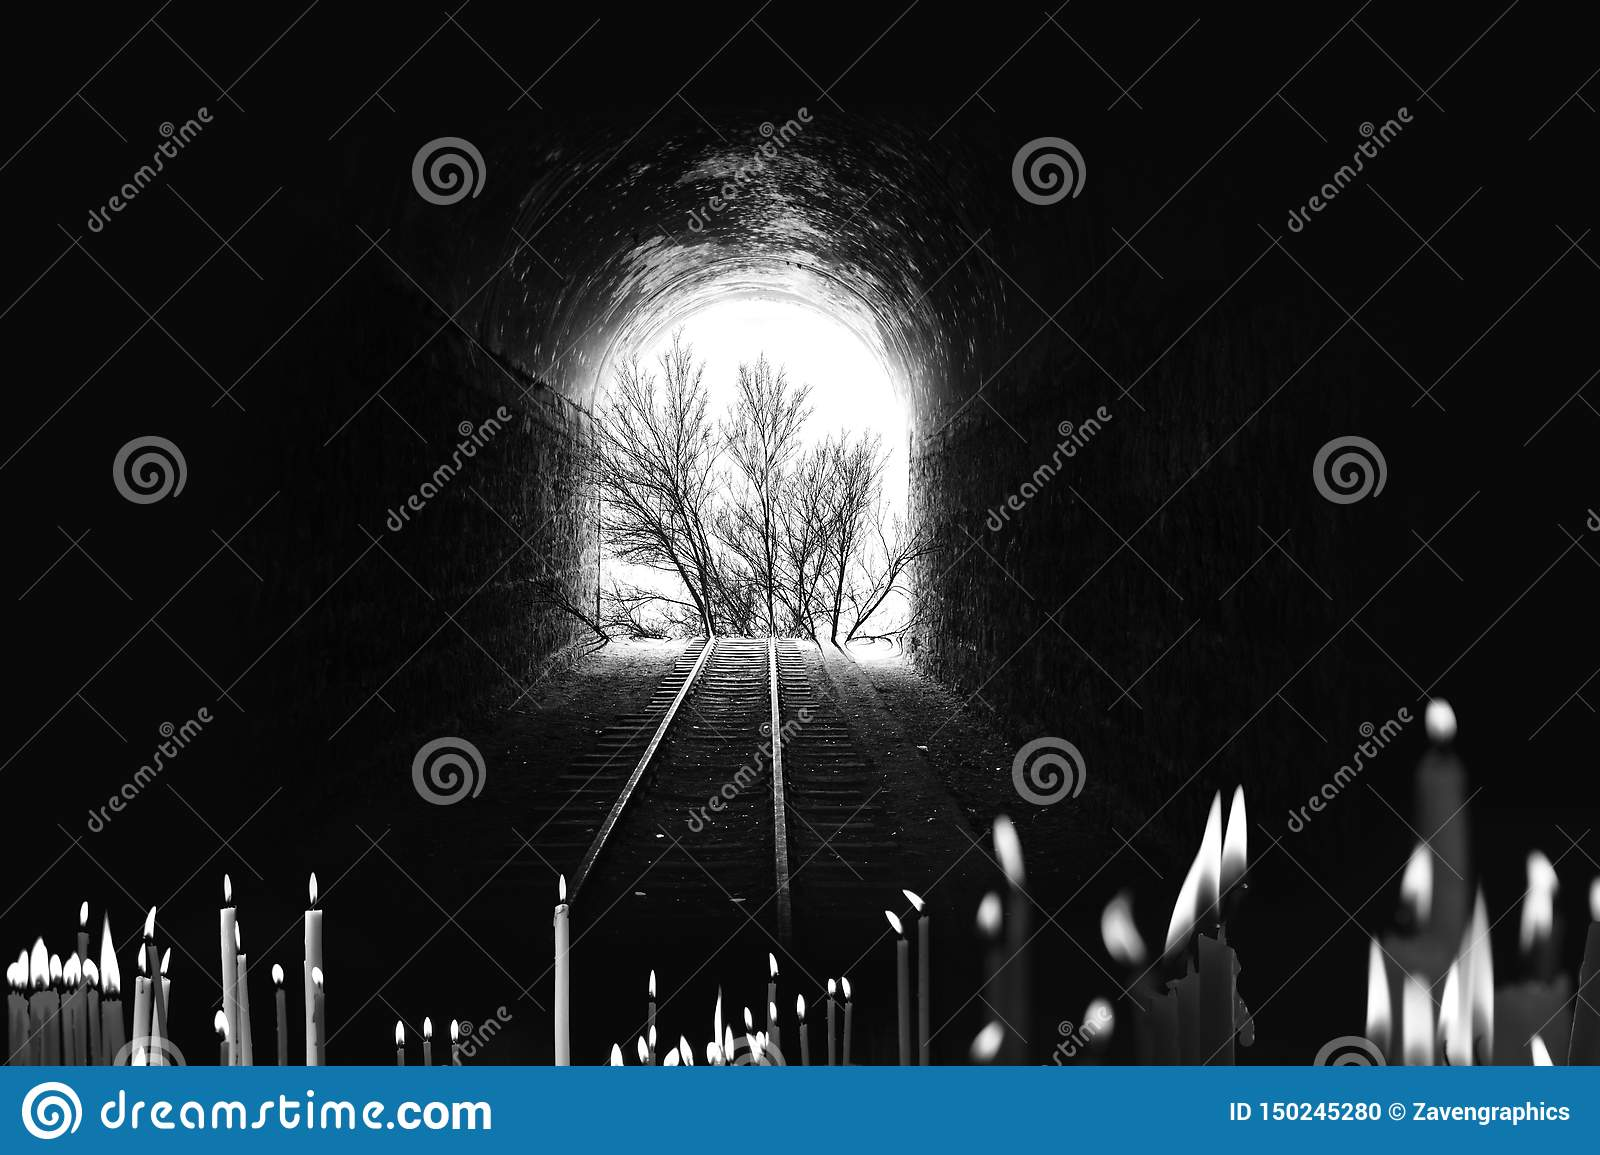 End of the tunnel, Railway tree, with candles Photography